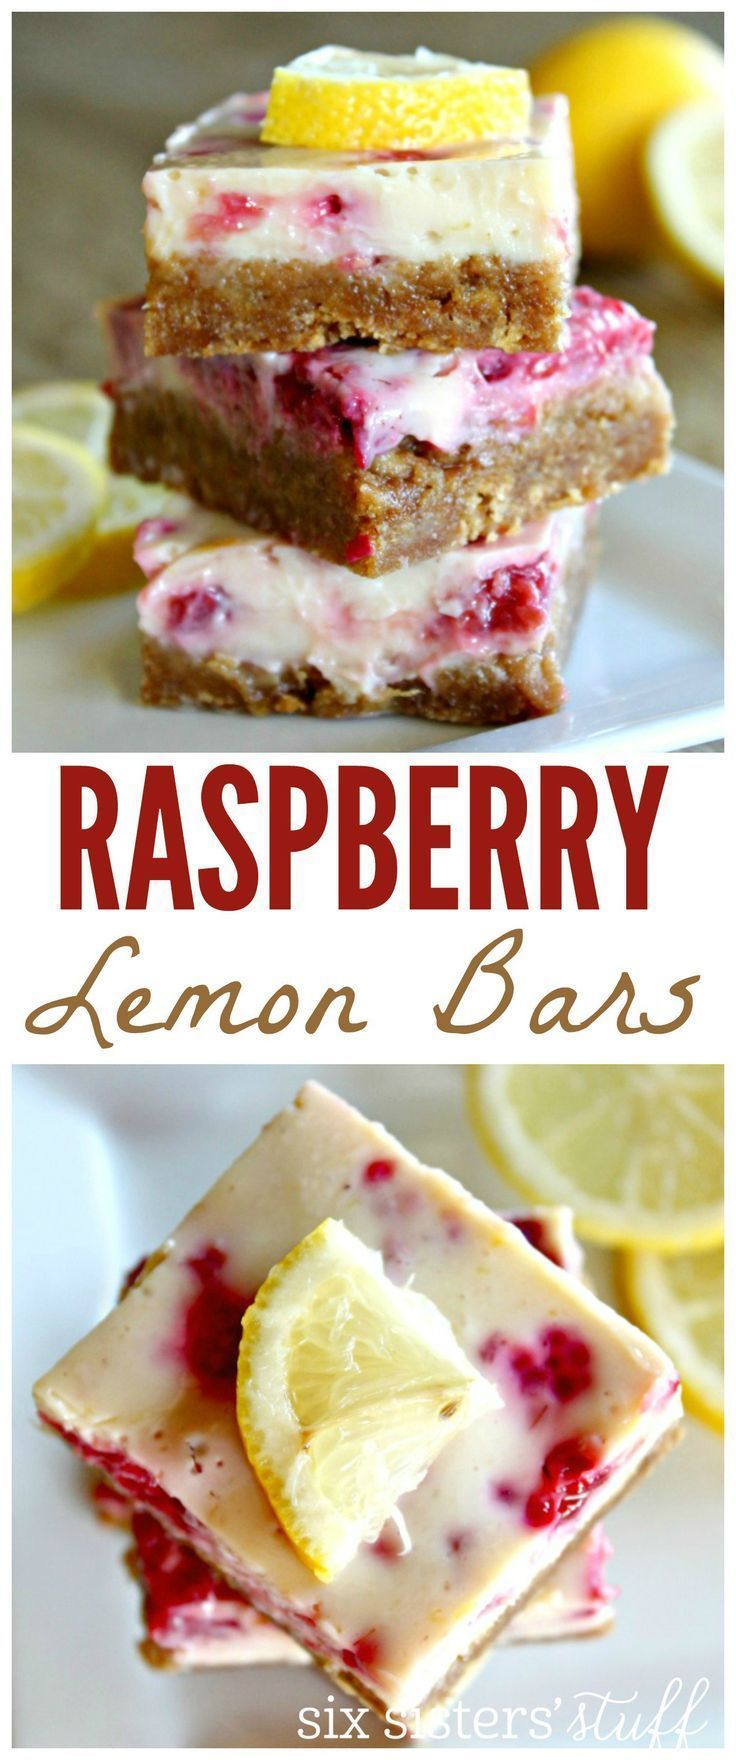 Raspberry Lemon Bars from Six Sisters Stuff | Best Dessert Recipes | Bars and Brownies Ideas | Potluck Food | Spring Food Ideas | Easter Dessert